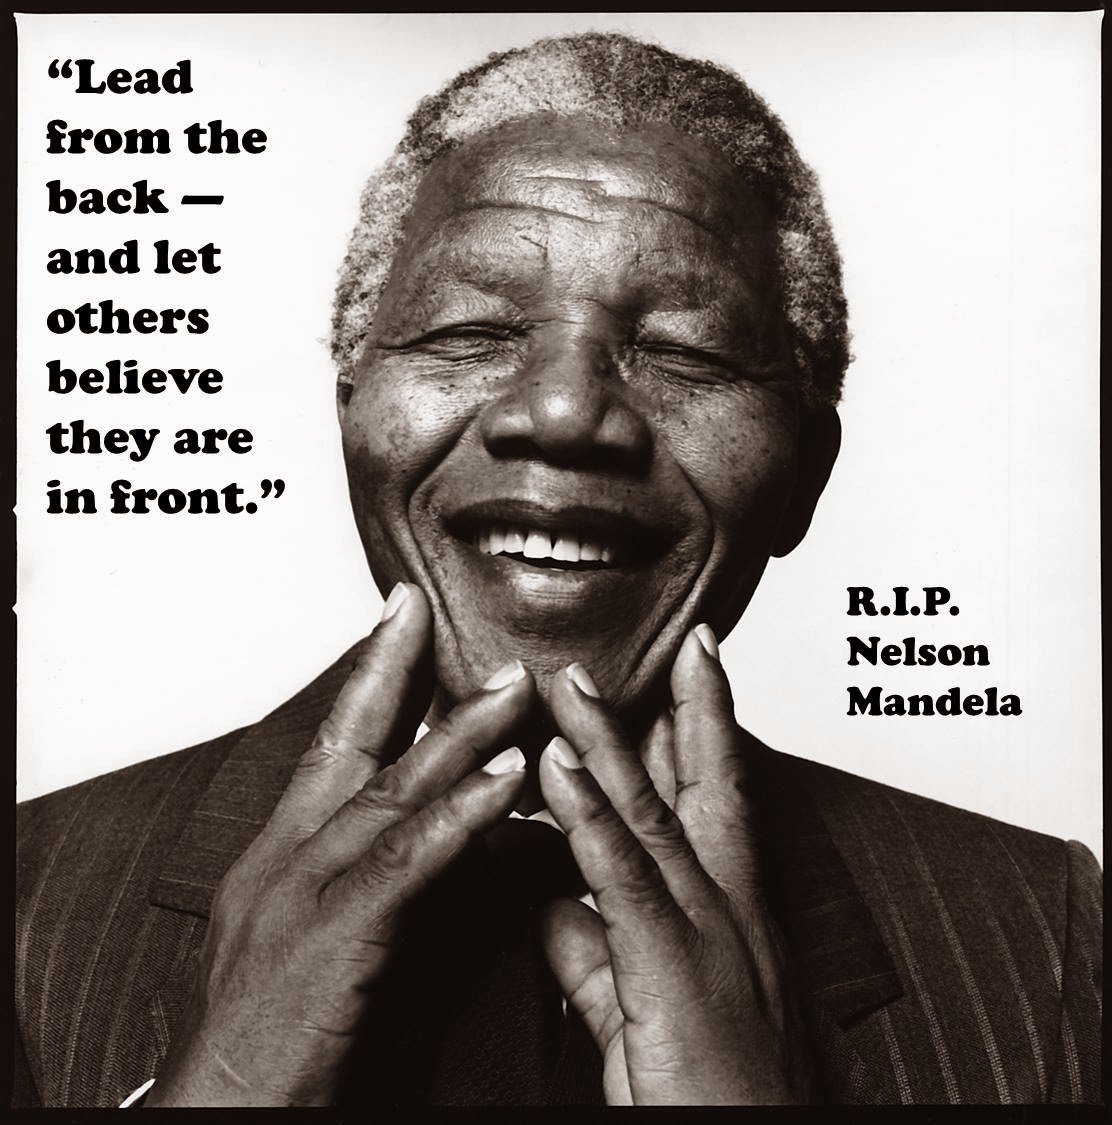 Rest In Peace Nelson Mandela